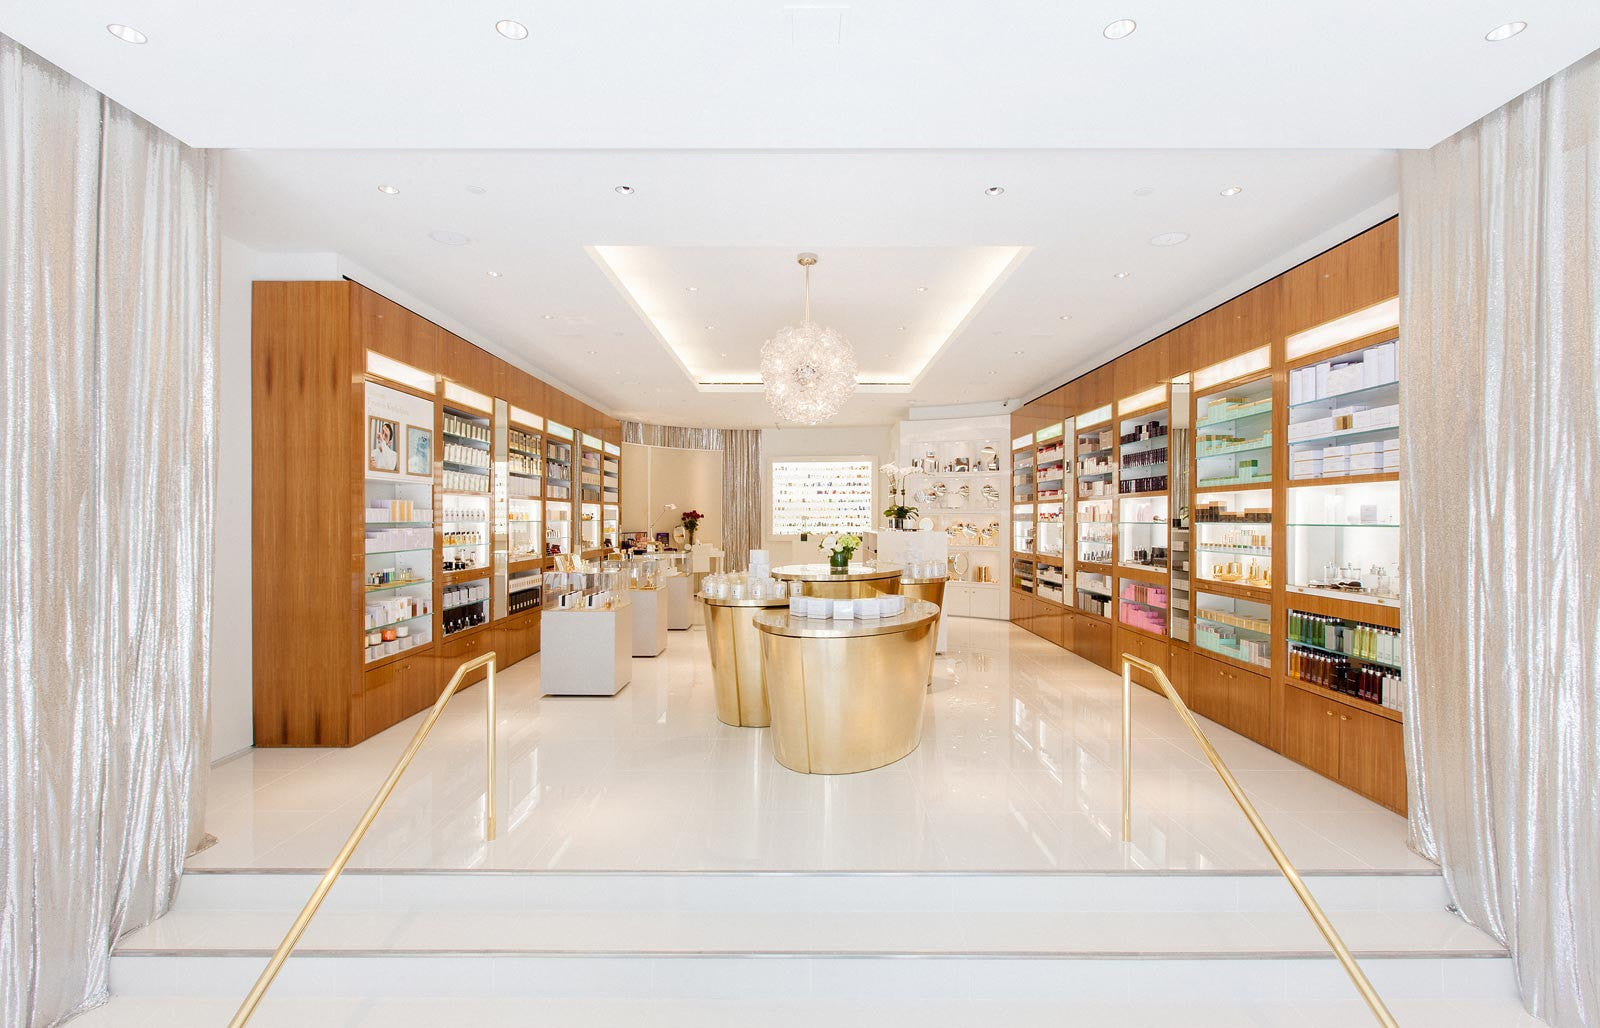 Osswald perfumery in-store image. White floor with large gold metallic display table with perfumes and skincare on it. Walls of cherry red wood with shelves filled with perfumes, skincare, body and beauty products. Back wall a light up case filled with vintage perfume bottles.